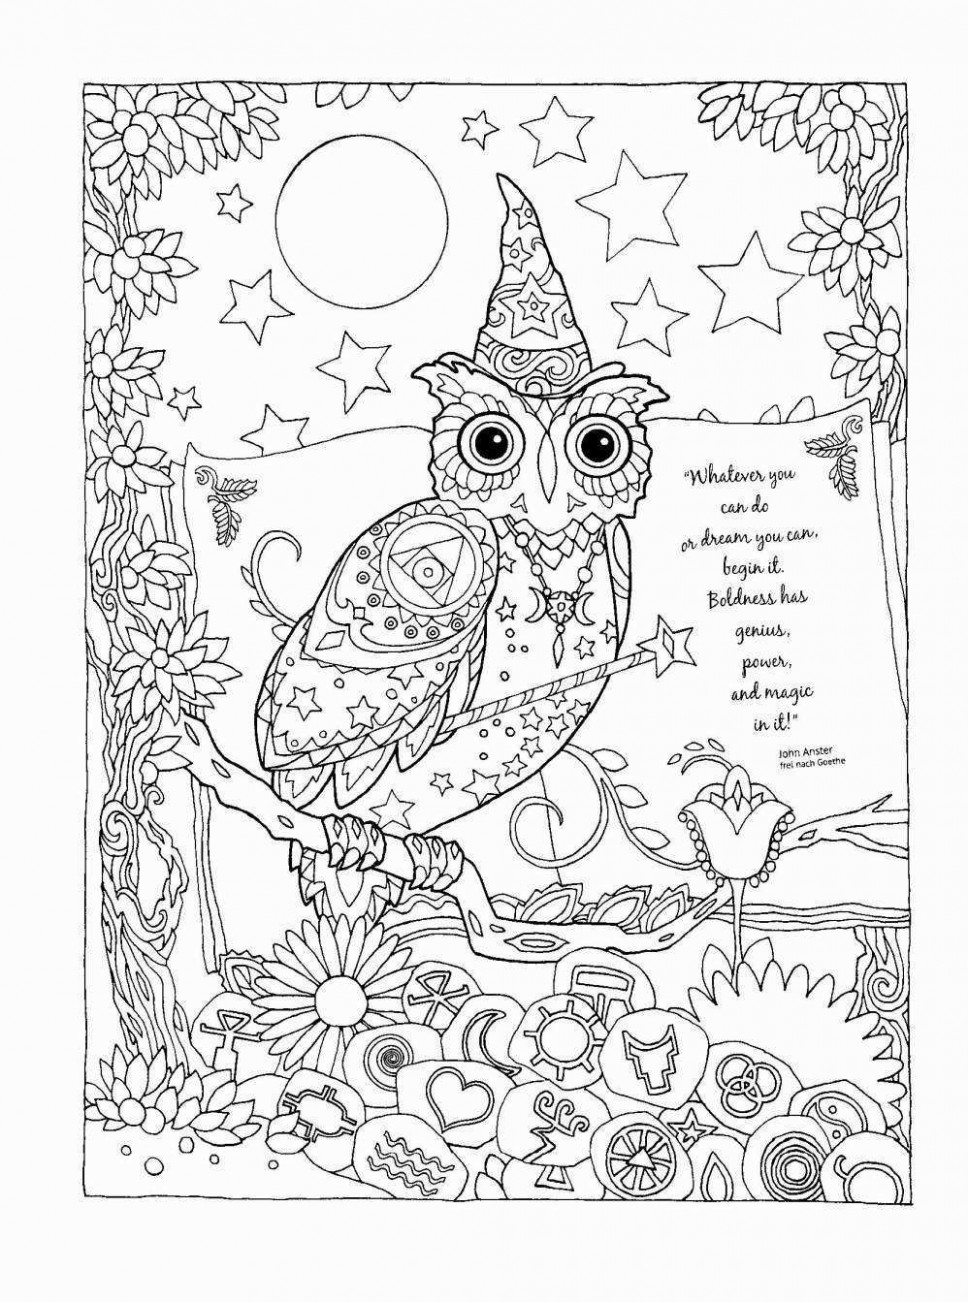 Coloring Ideas : Middle School Coloring Pages Luxury Color By Number ...